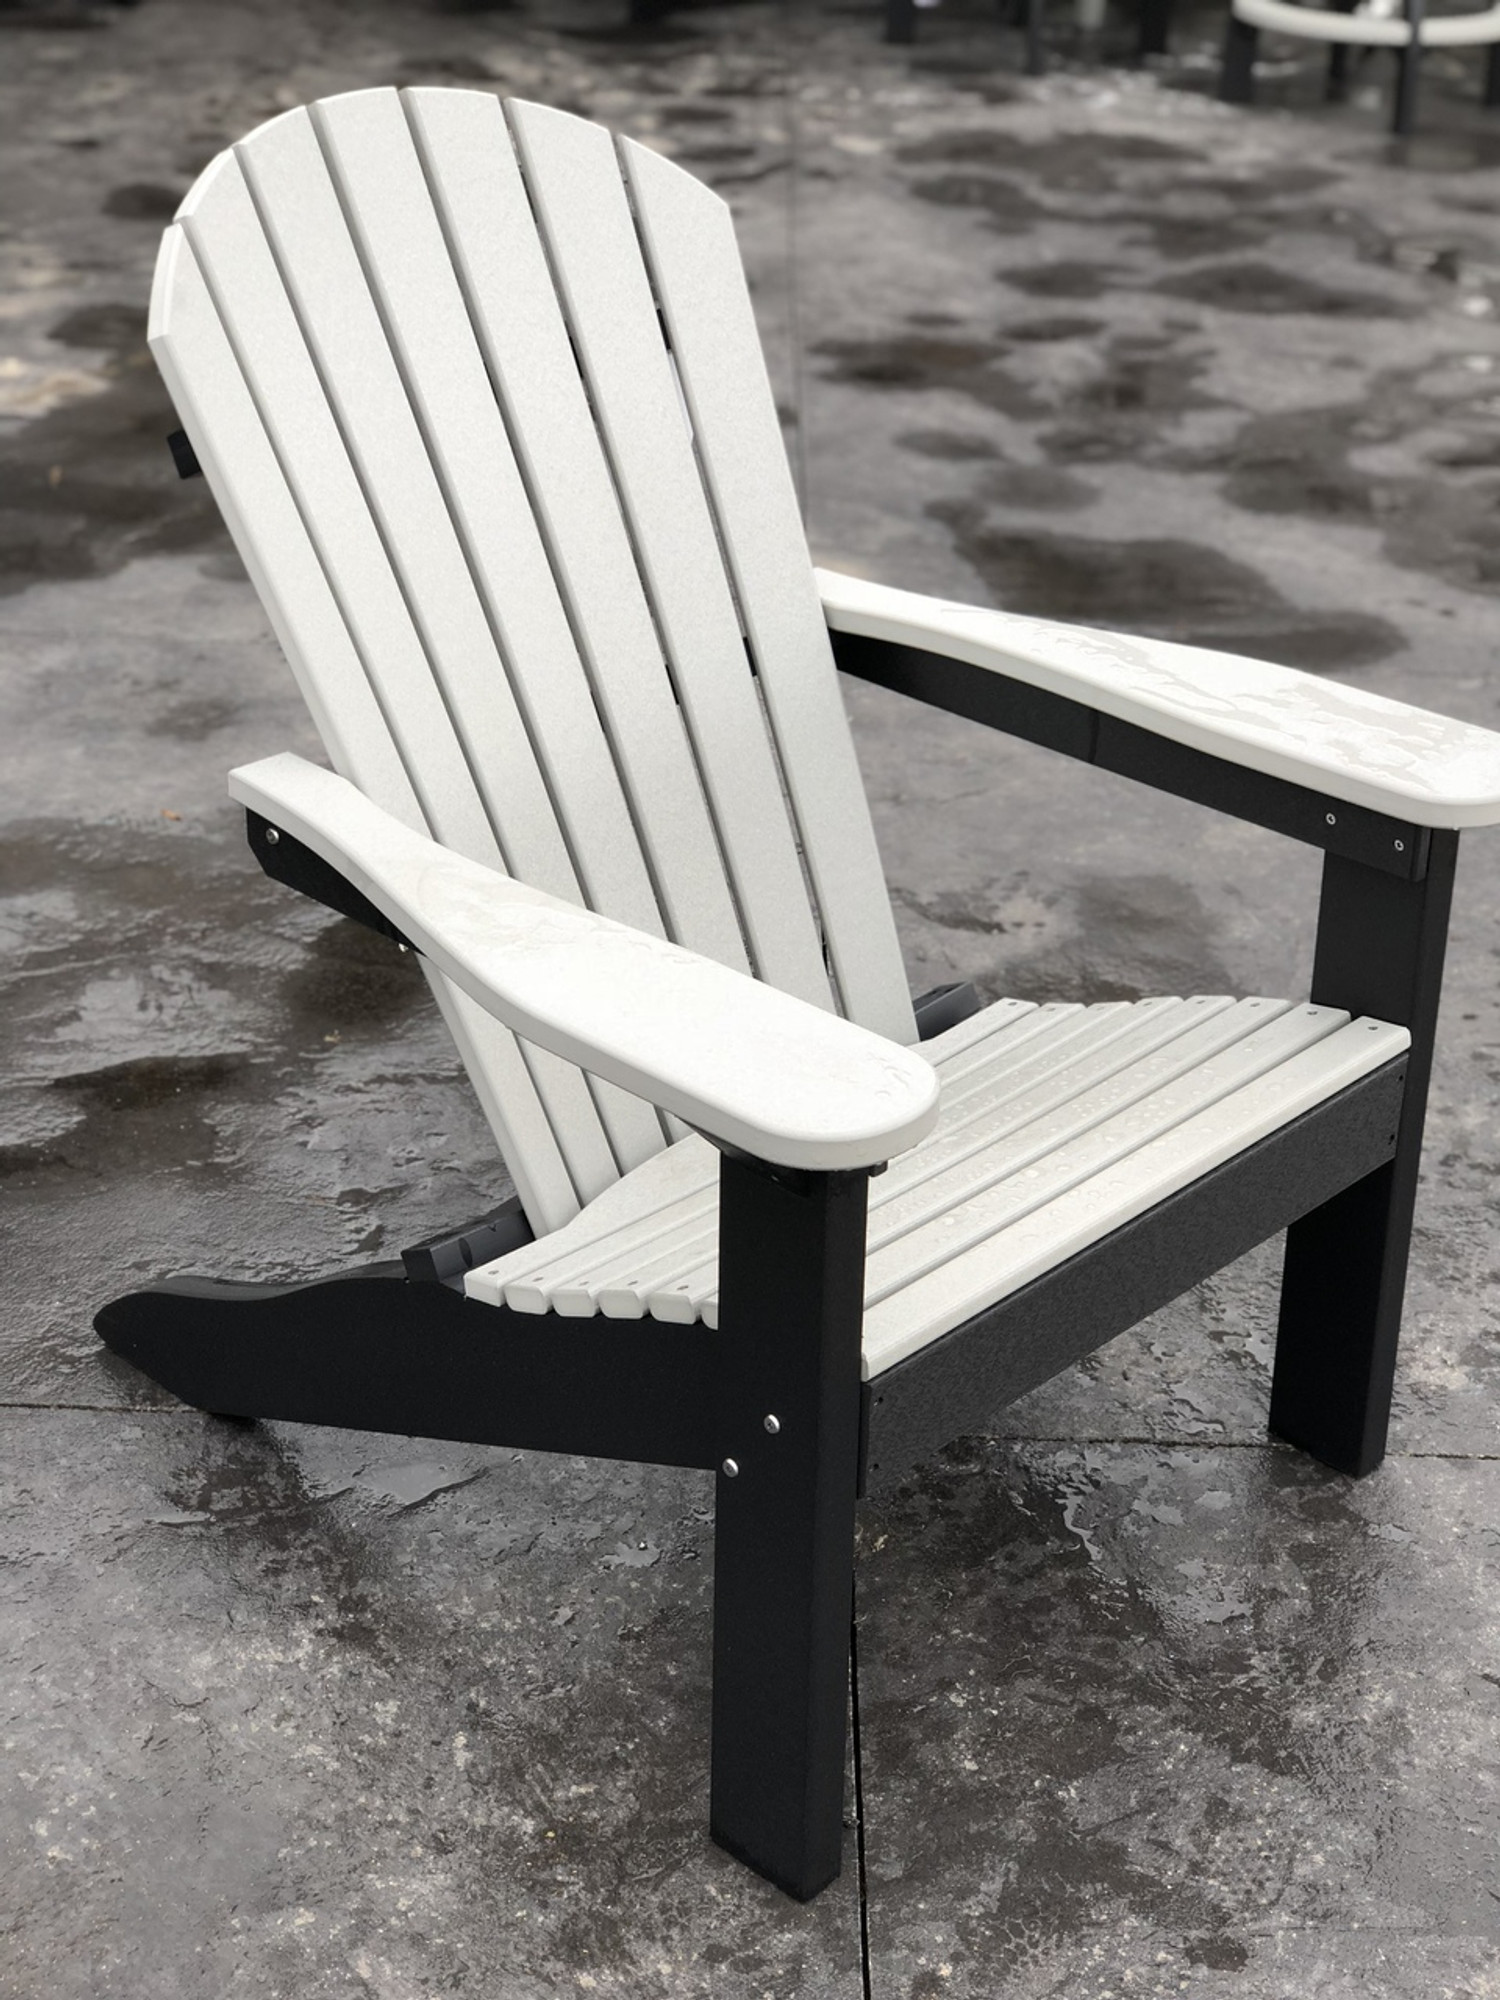 Adirondack Chair Light Gray On Black Adirondack Chair Light Gray On Black  ...